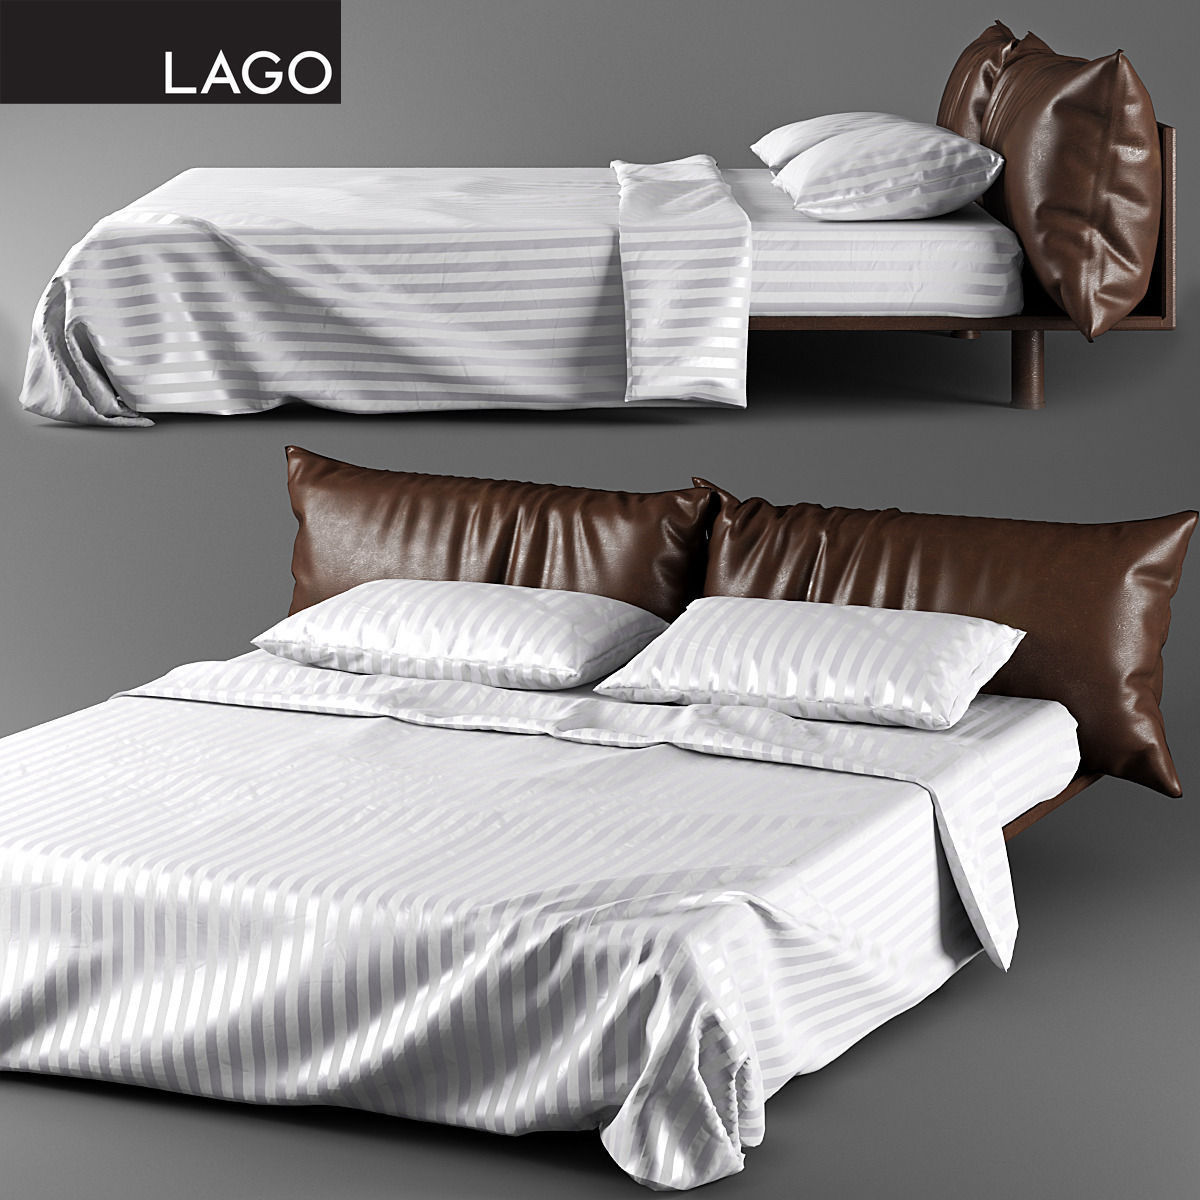 LAGO KUSSIN D CGTrader - Lago bed